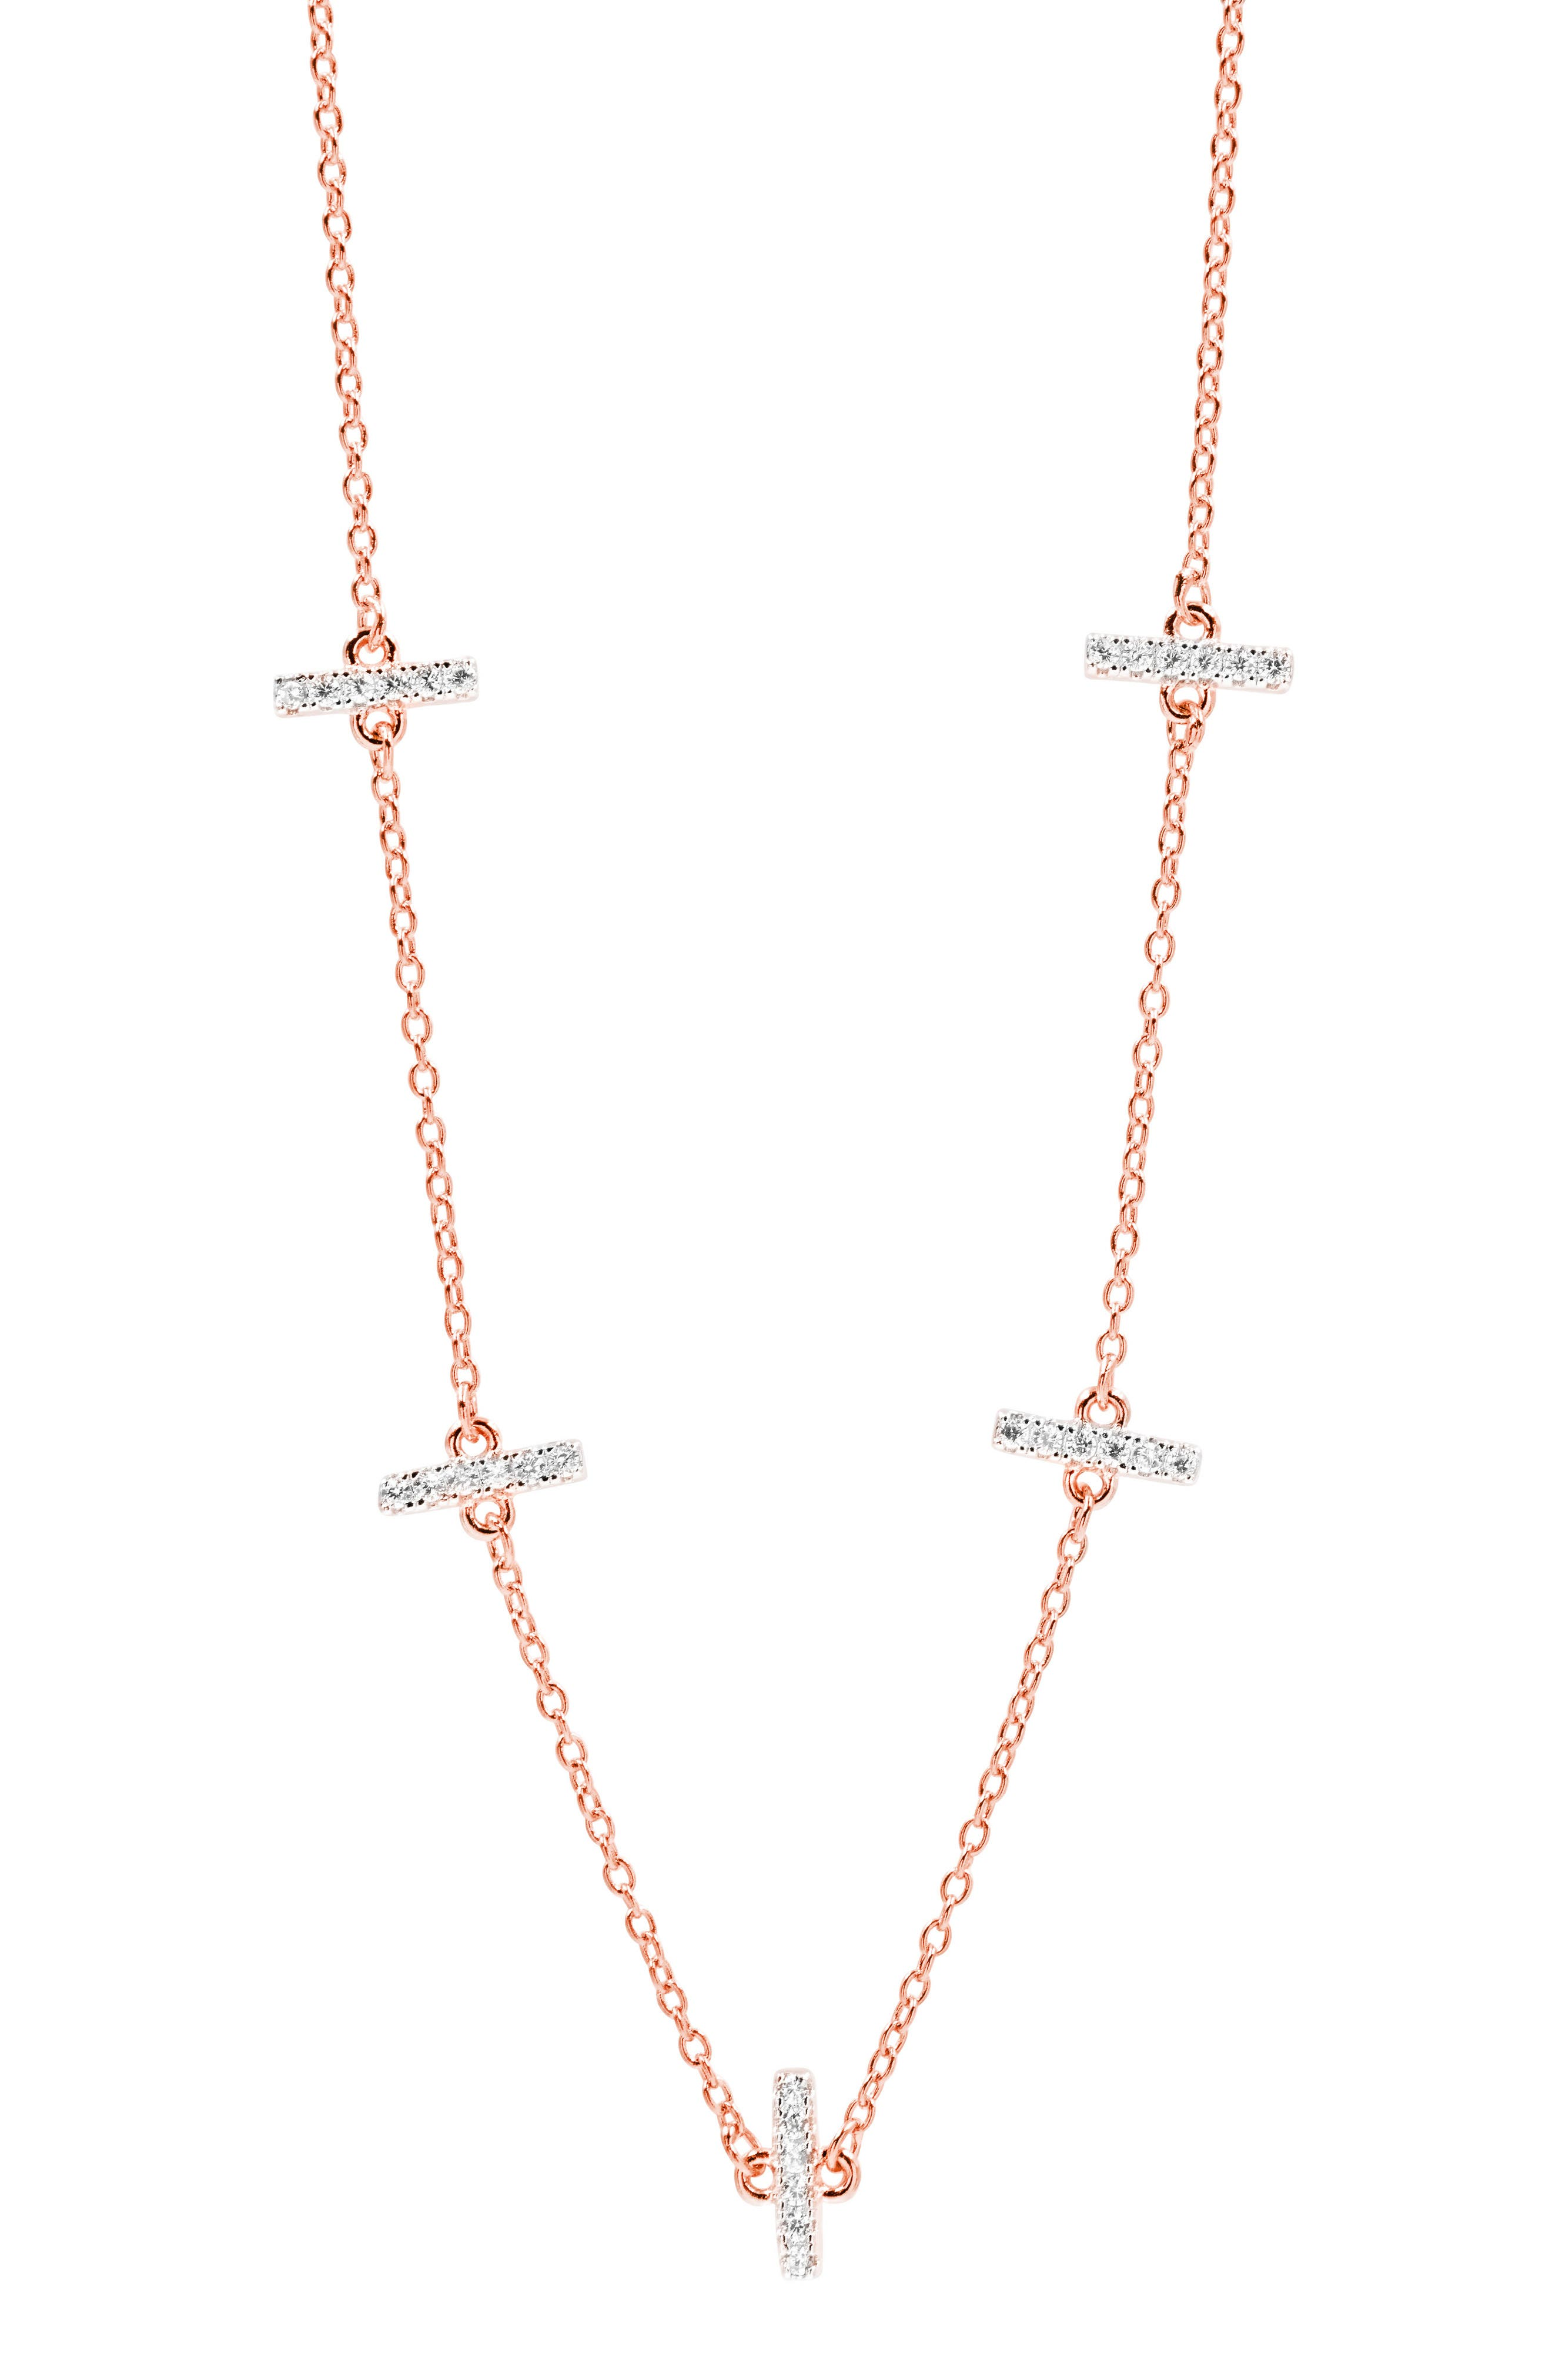 Radiance Crystal Station Necklace,                             Main thumbnail 1, color,                             ROSE/ SILVER